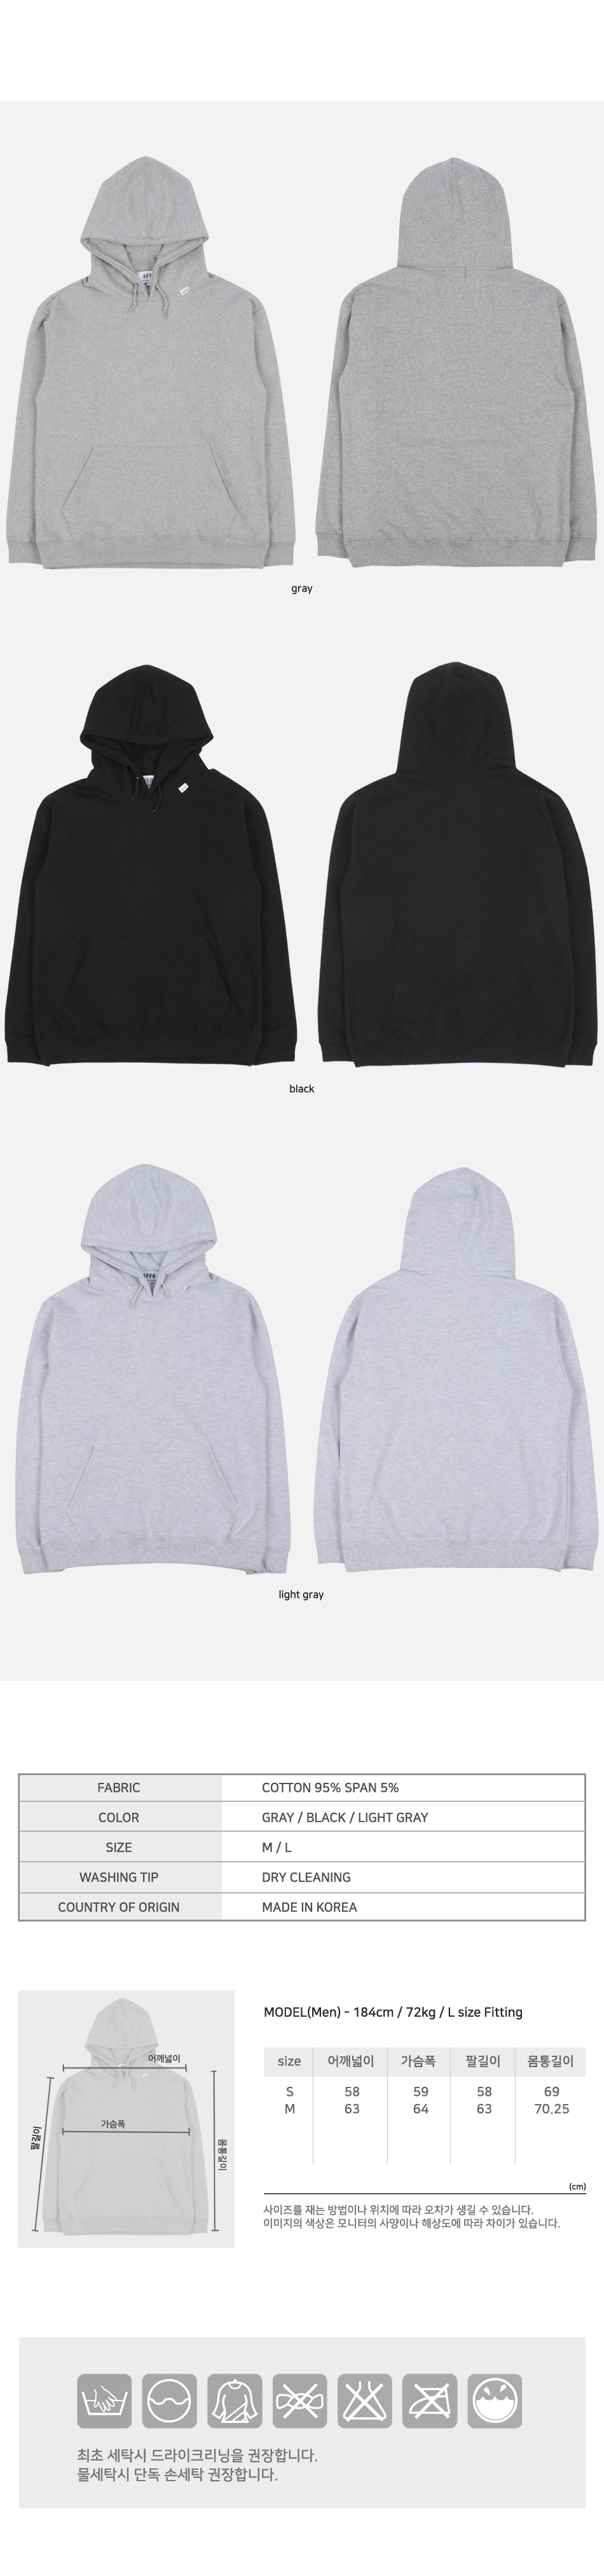 17 NFFO 2020FW Basic Sweat hoody l-gray 4.jpg